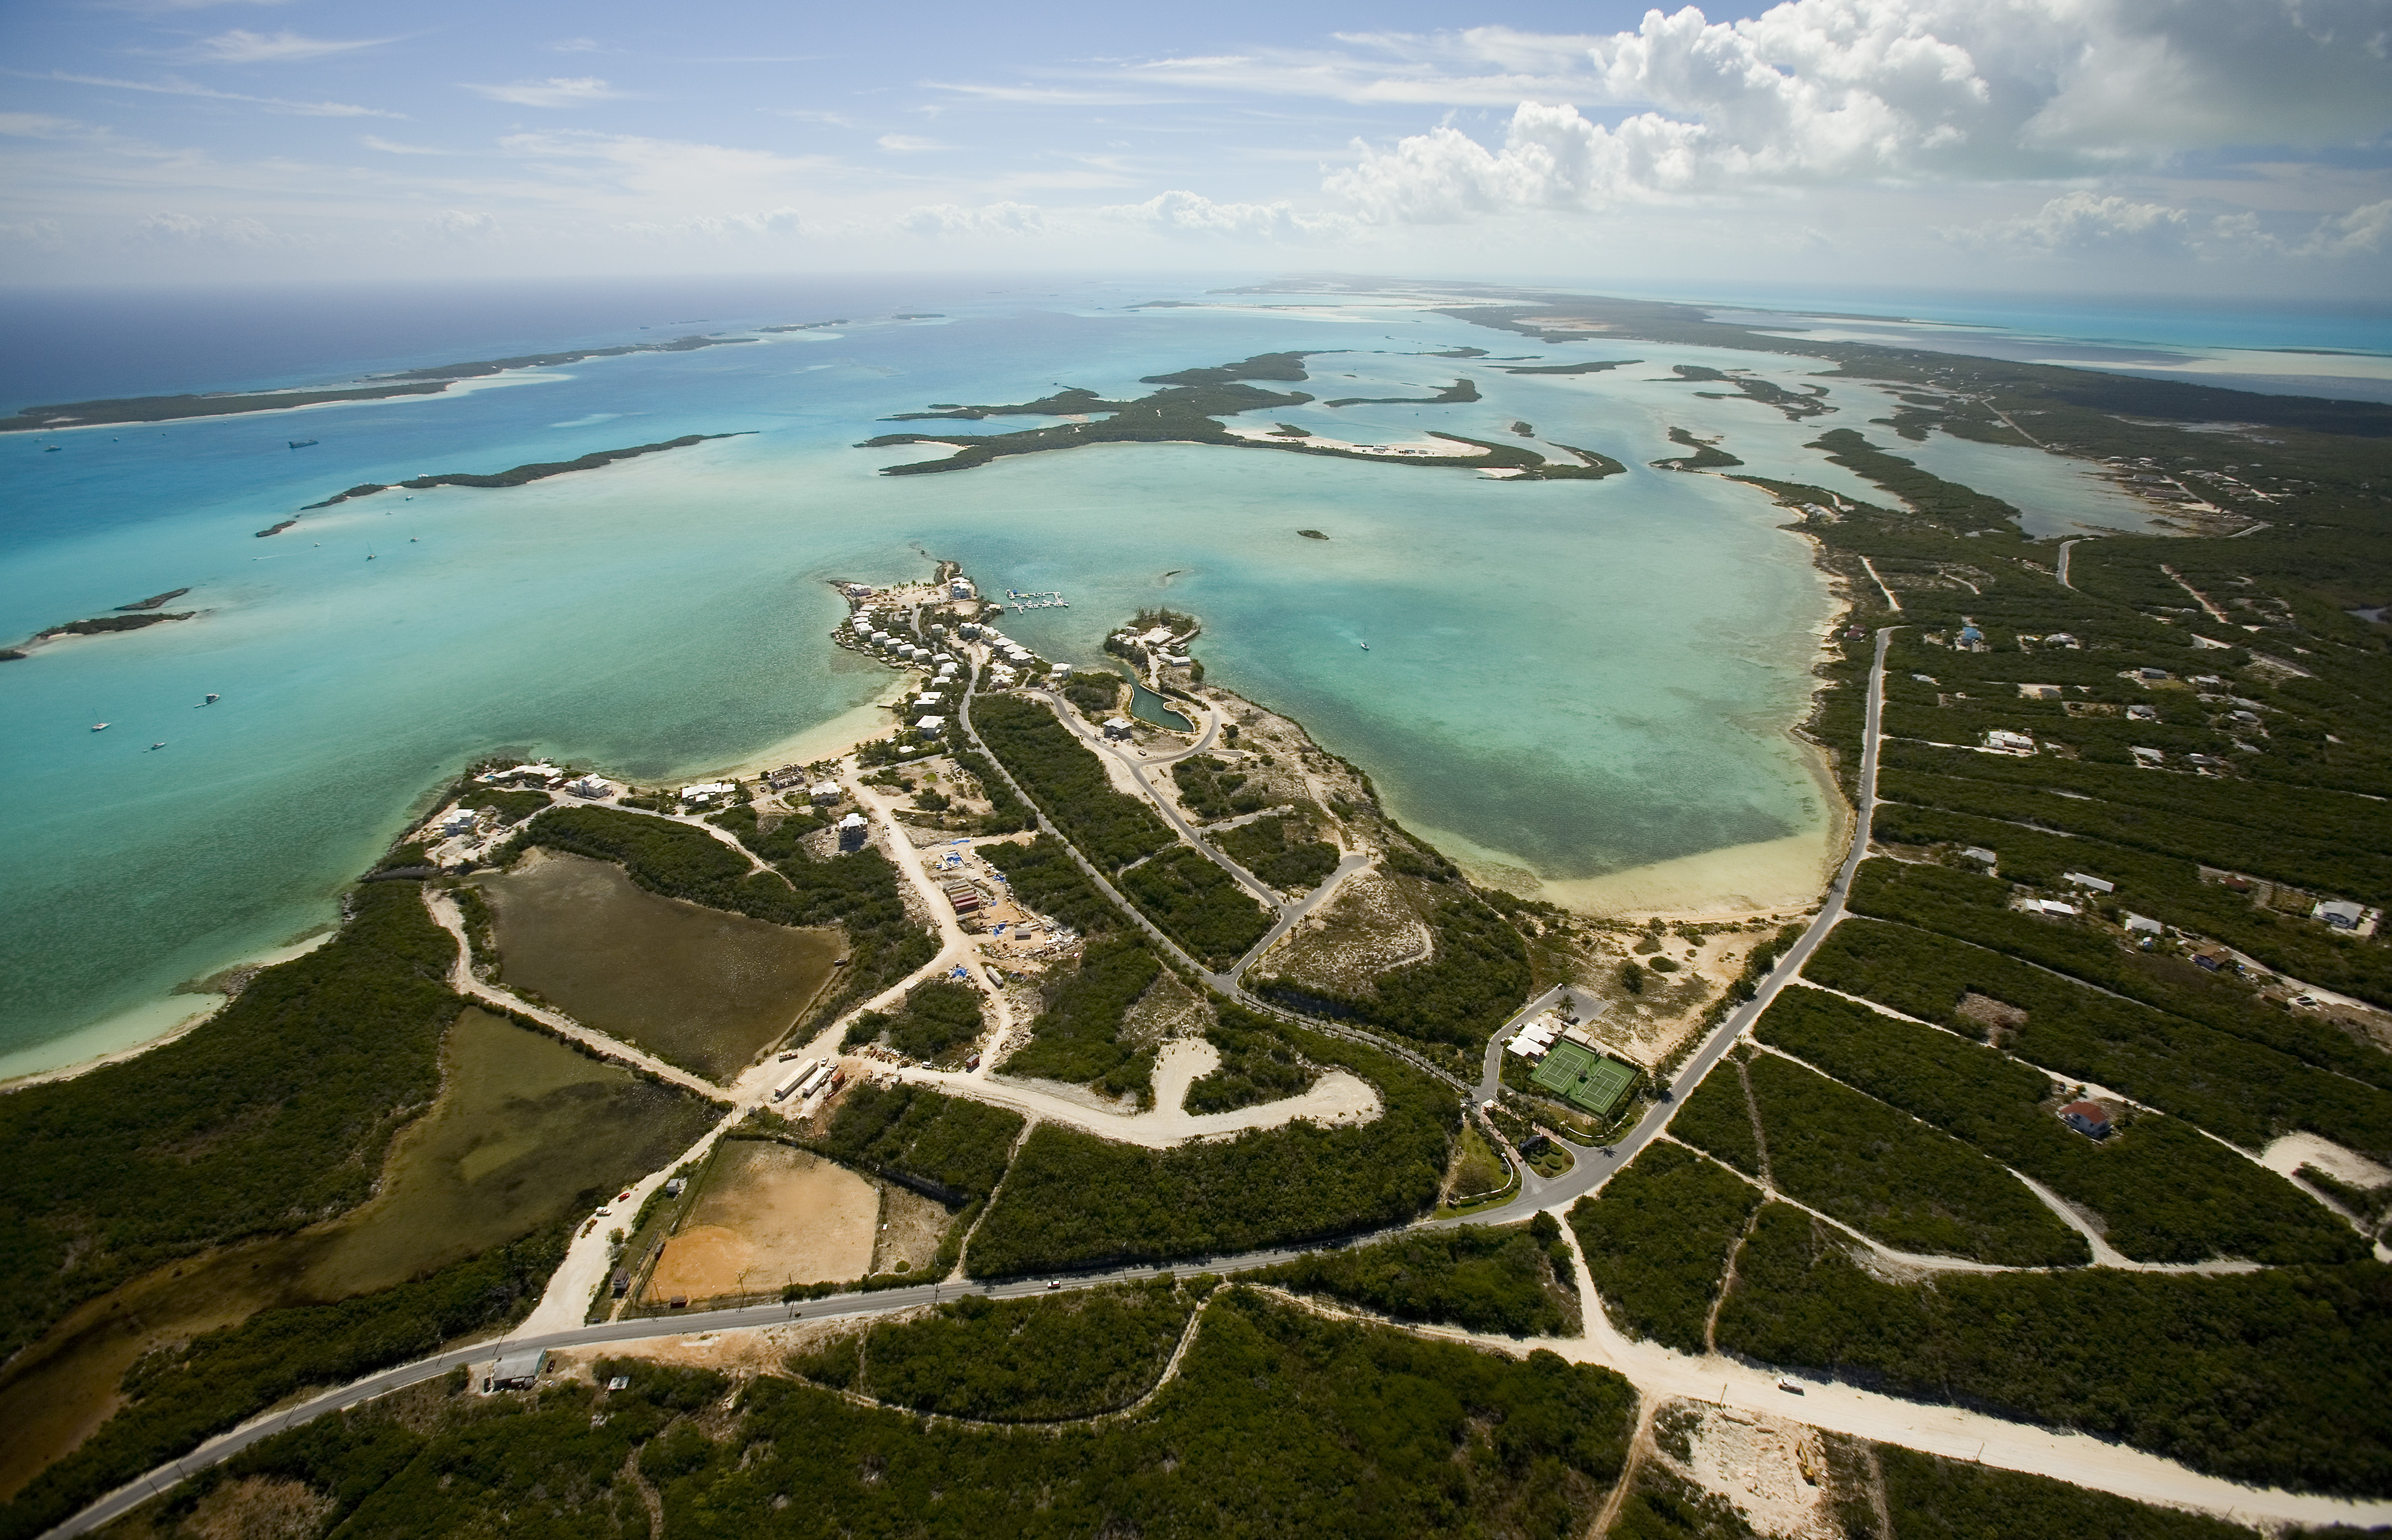 Direct Flight to the Bahamas Gives Travelers Unforgettable Opportunity